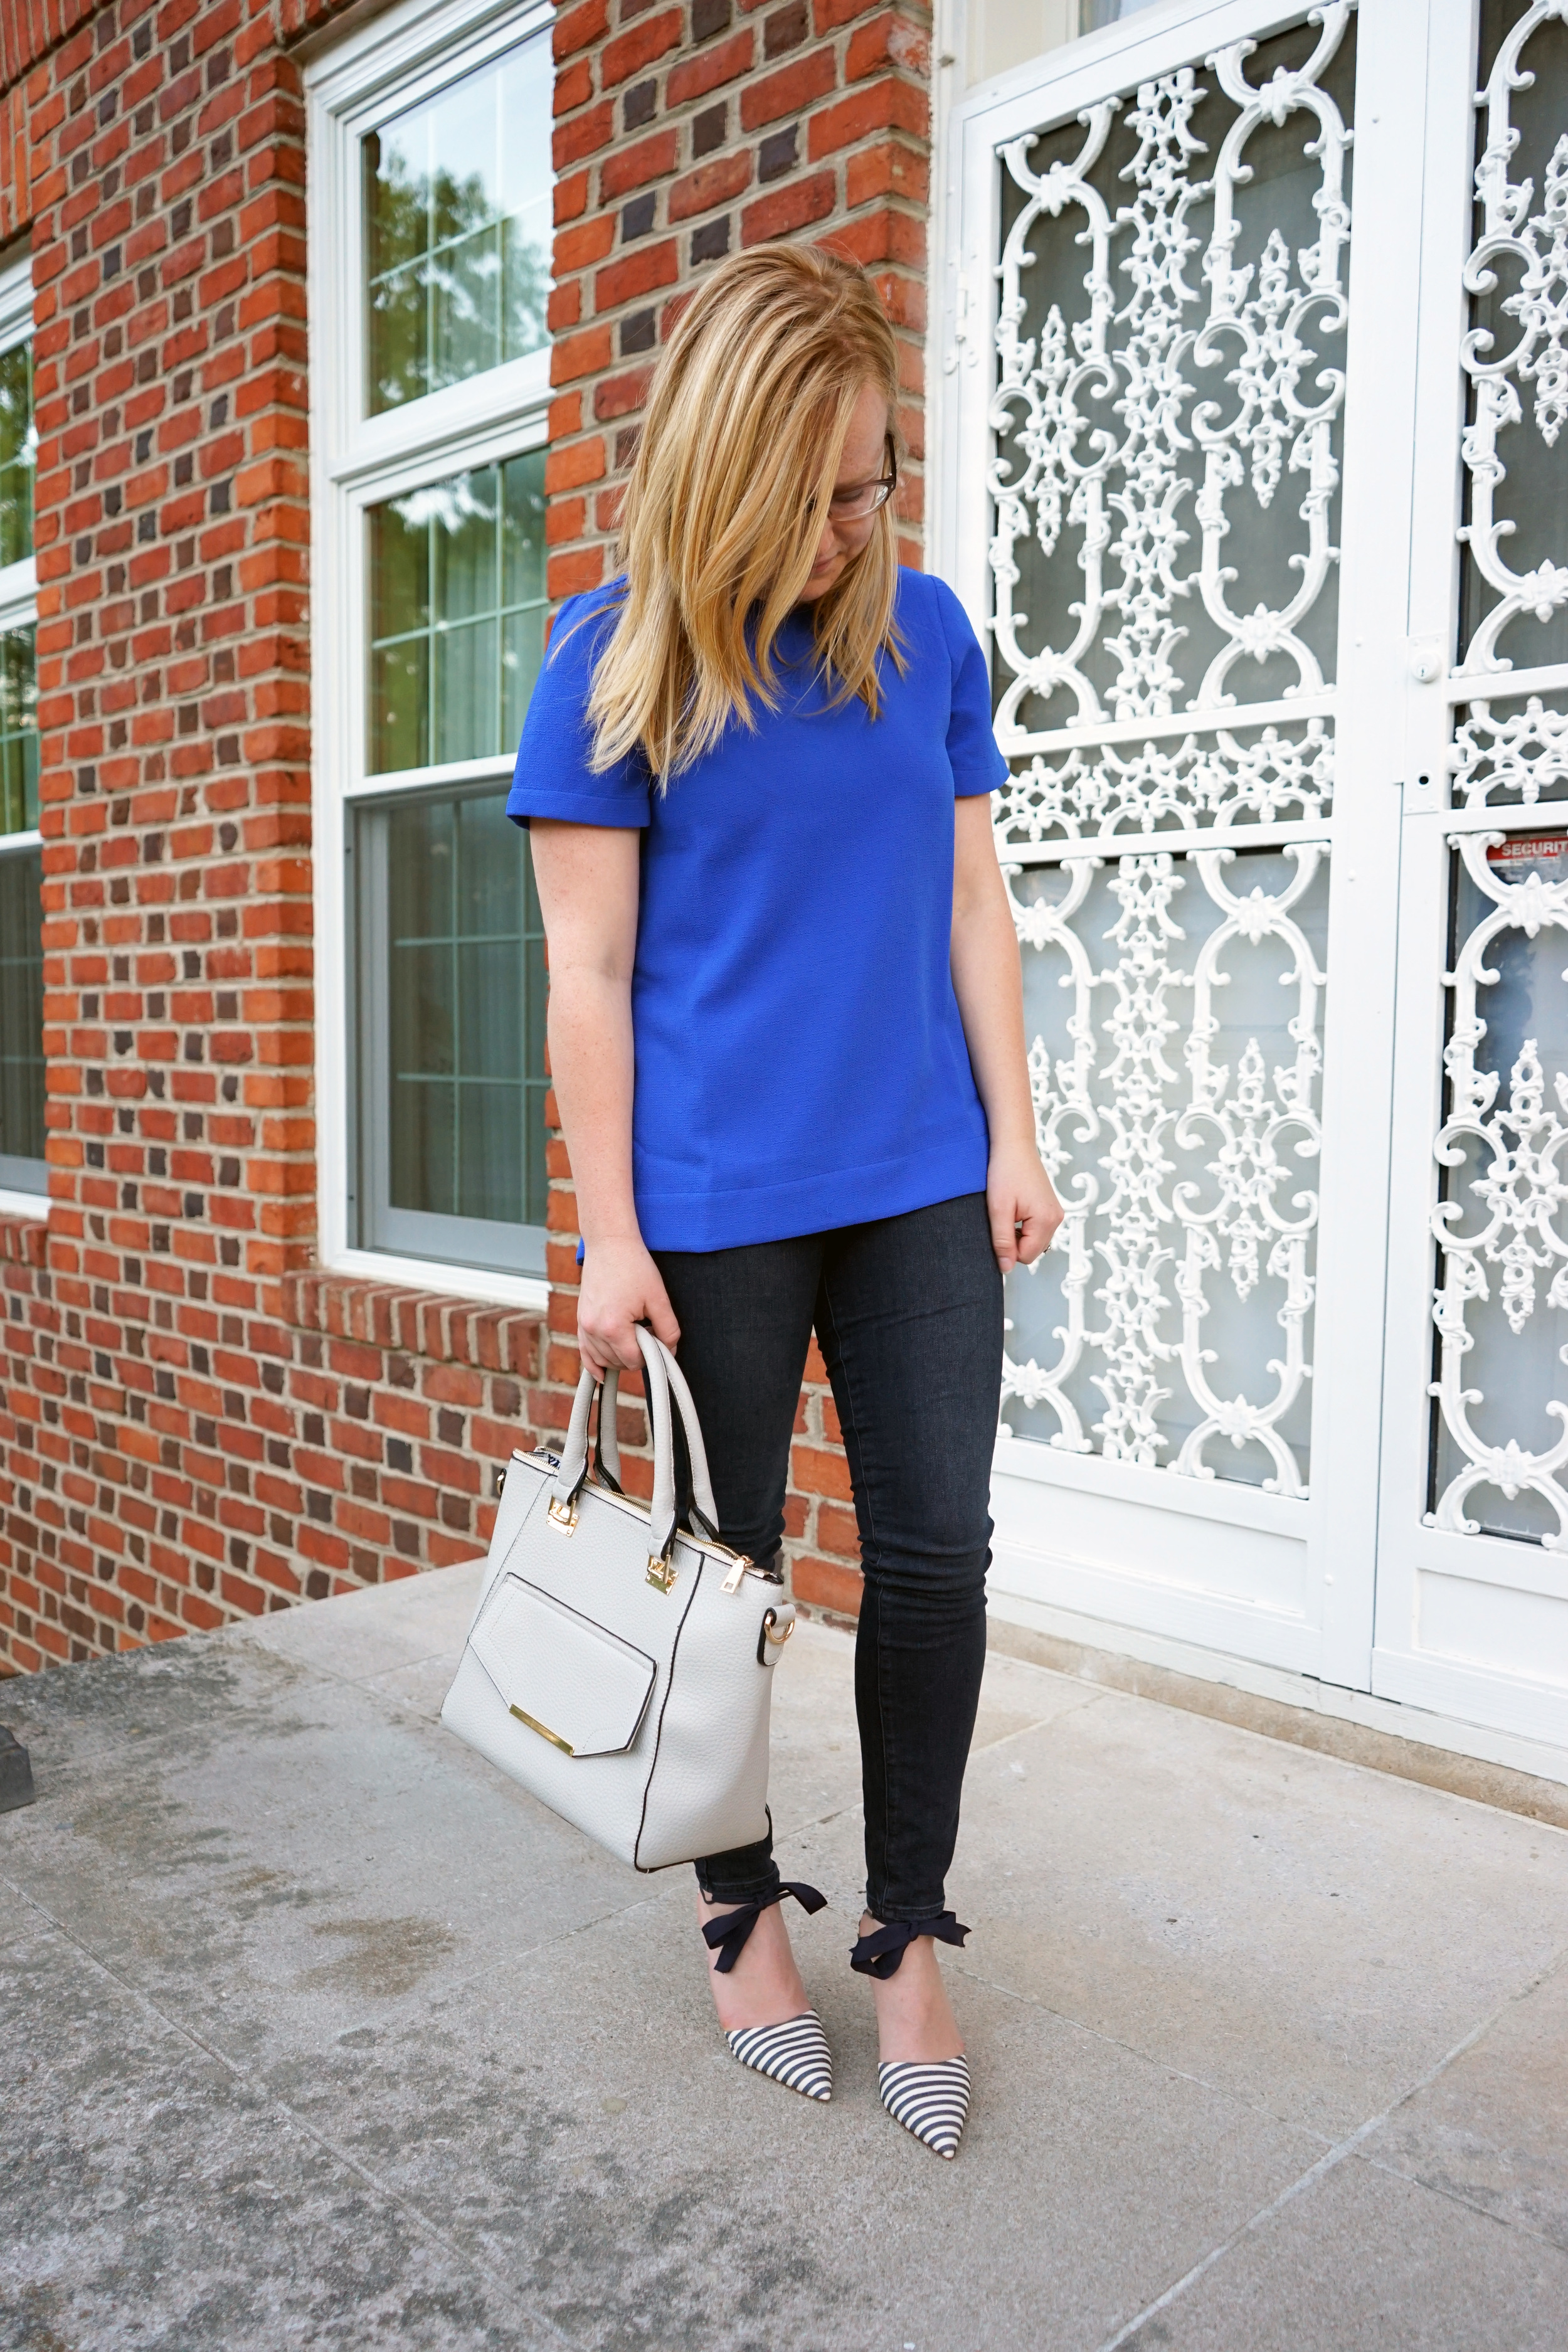 Maggie a la Mode - J Crew Elsie Bow-Tie Pumps, Madewell Trailored Tee, Paige VerdugoSkinny Jean Reed, Urban Expressions Gia Satchel